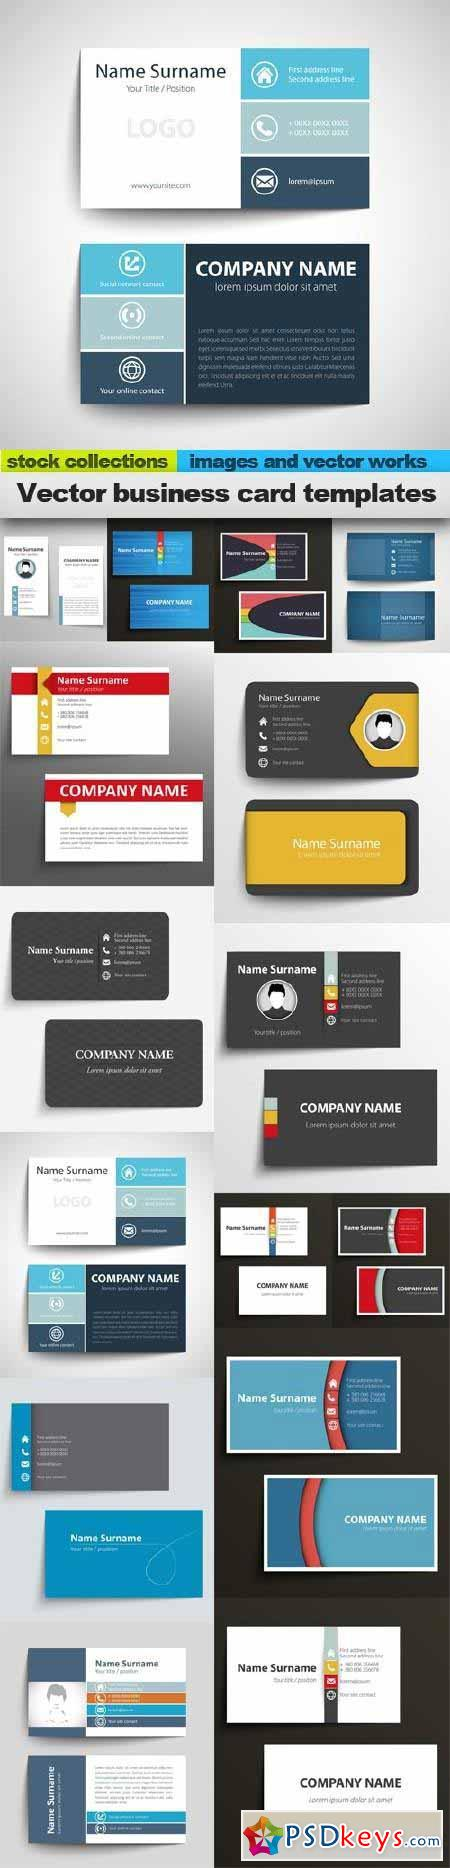 Business card template eps business plan template corporate movie postcards business cards free download photoshop vector stock business card eps template flashek Gallery